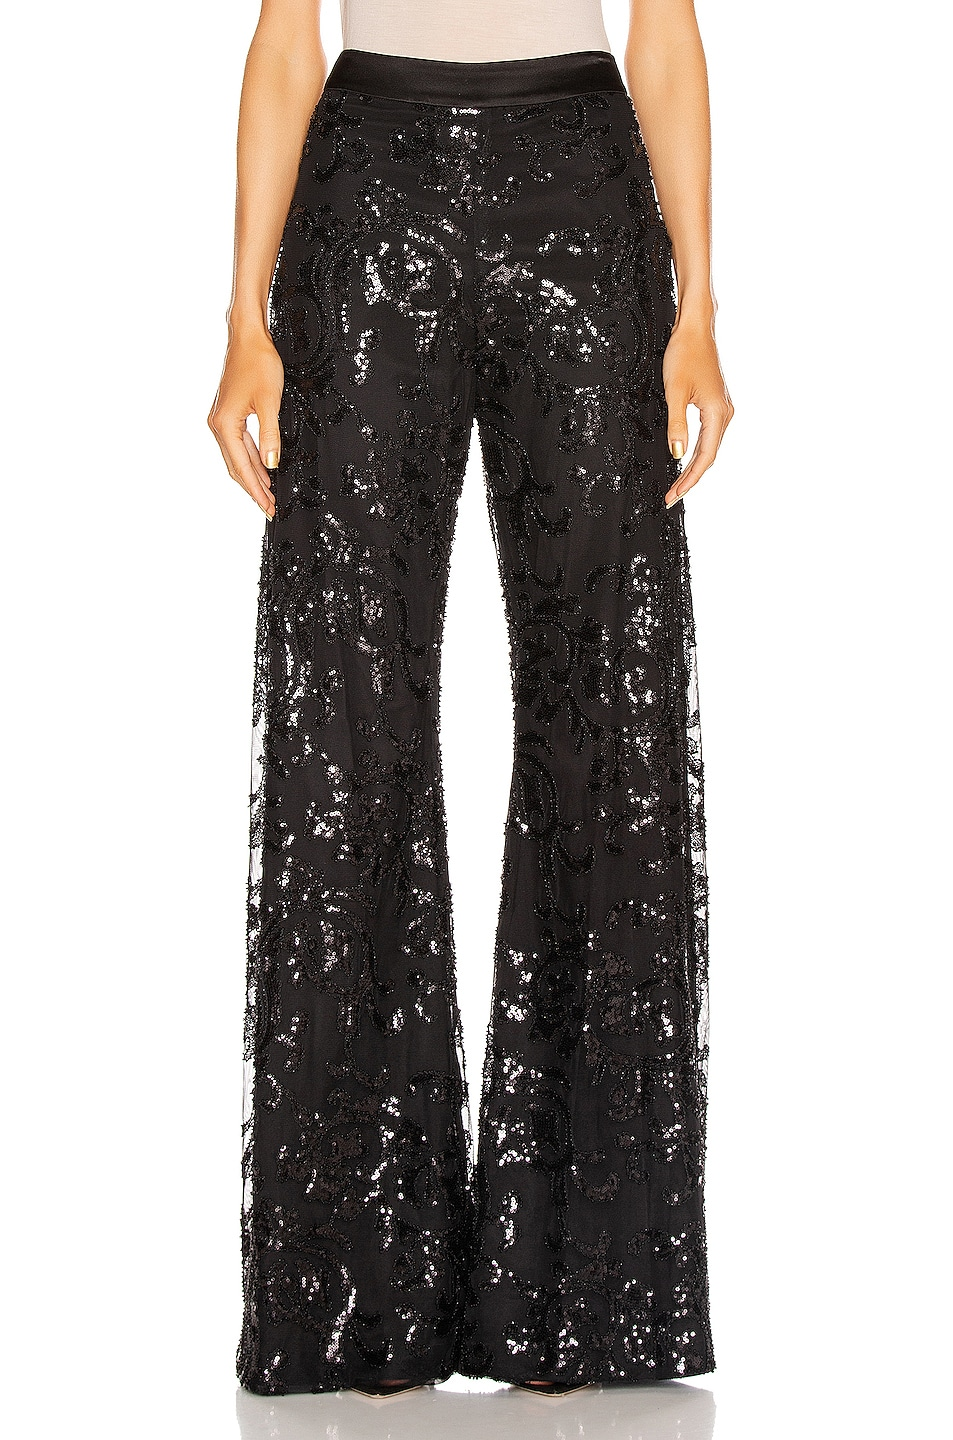 Image 1 of Alexis Silvestro Pant in Beaded Black